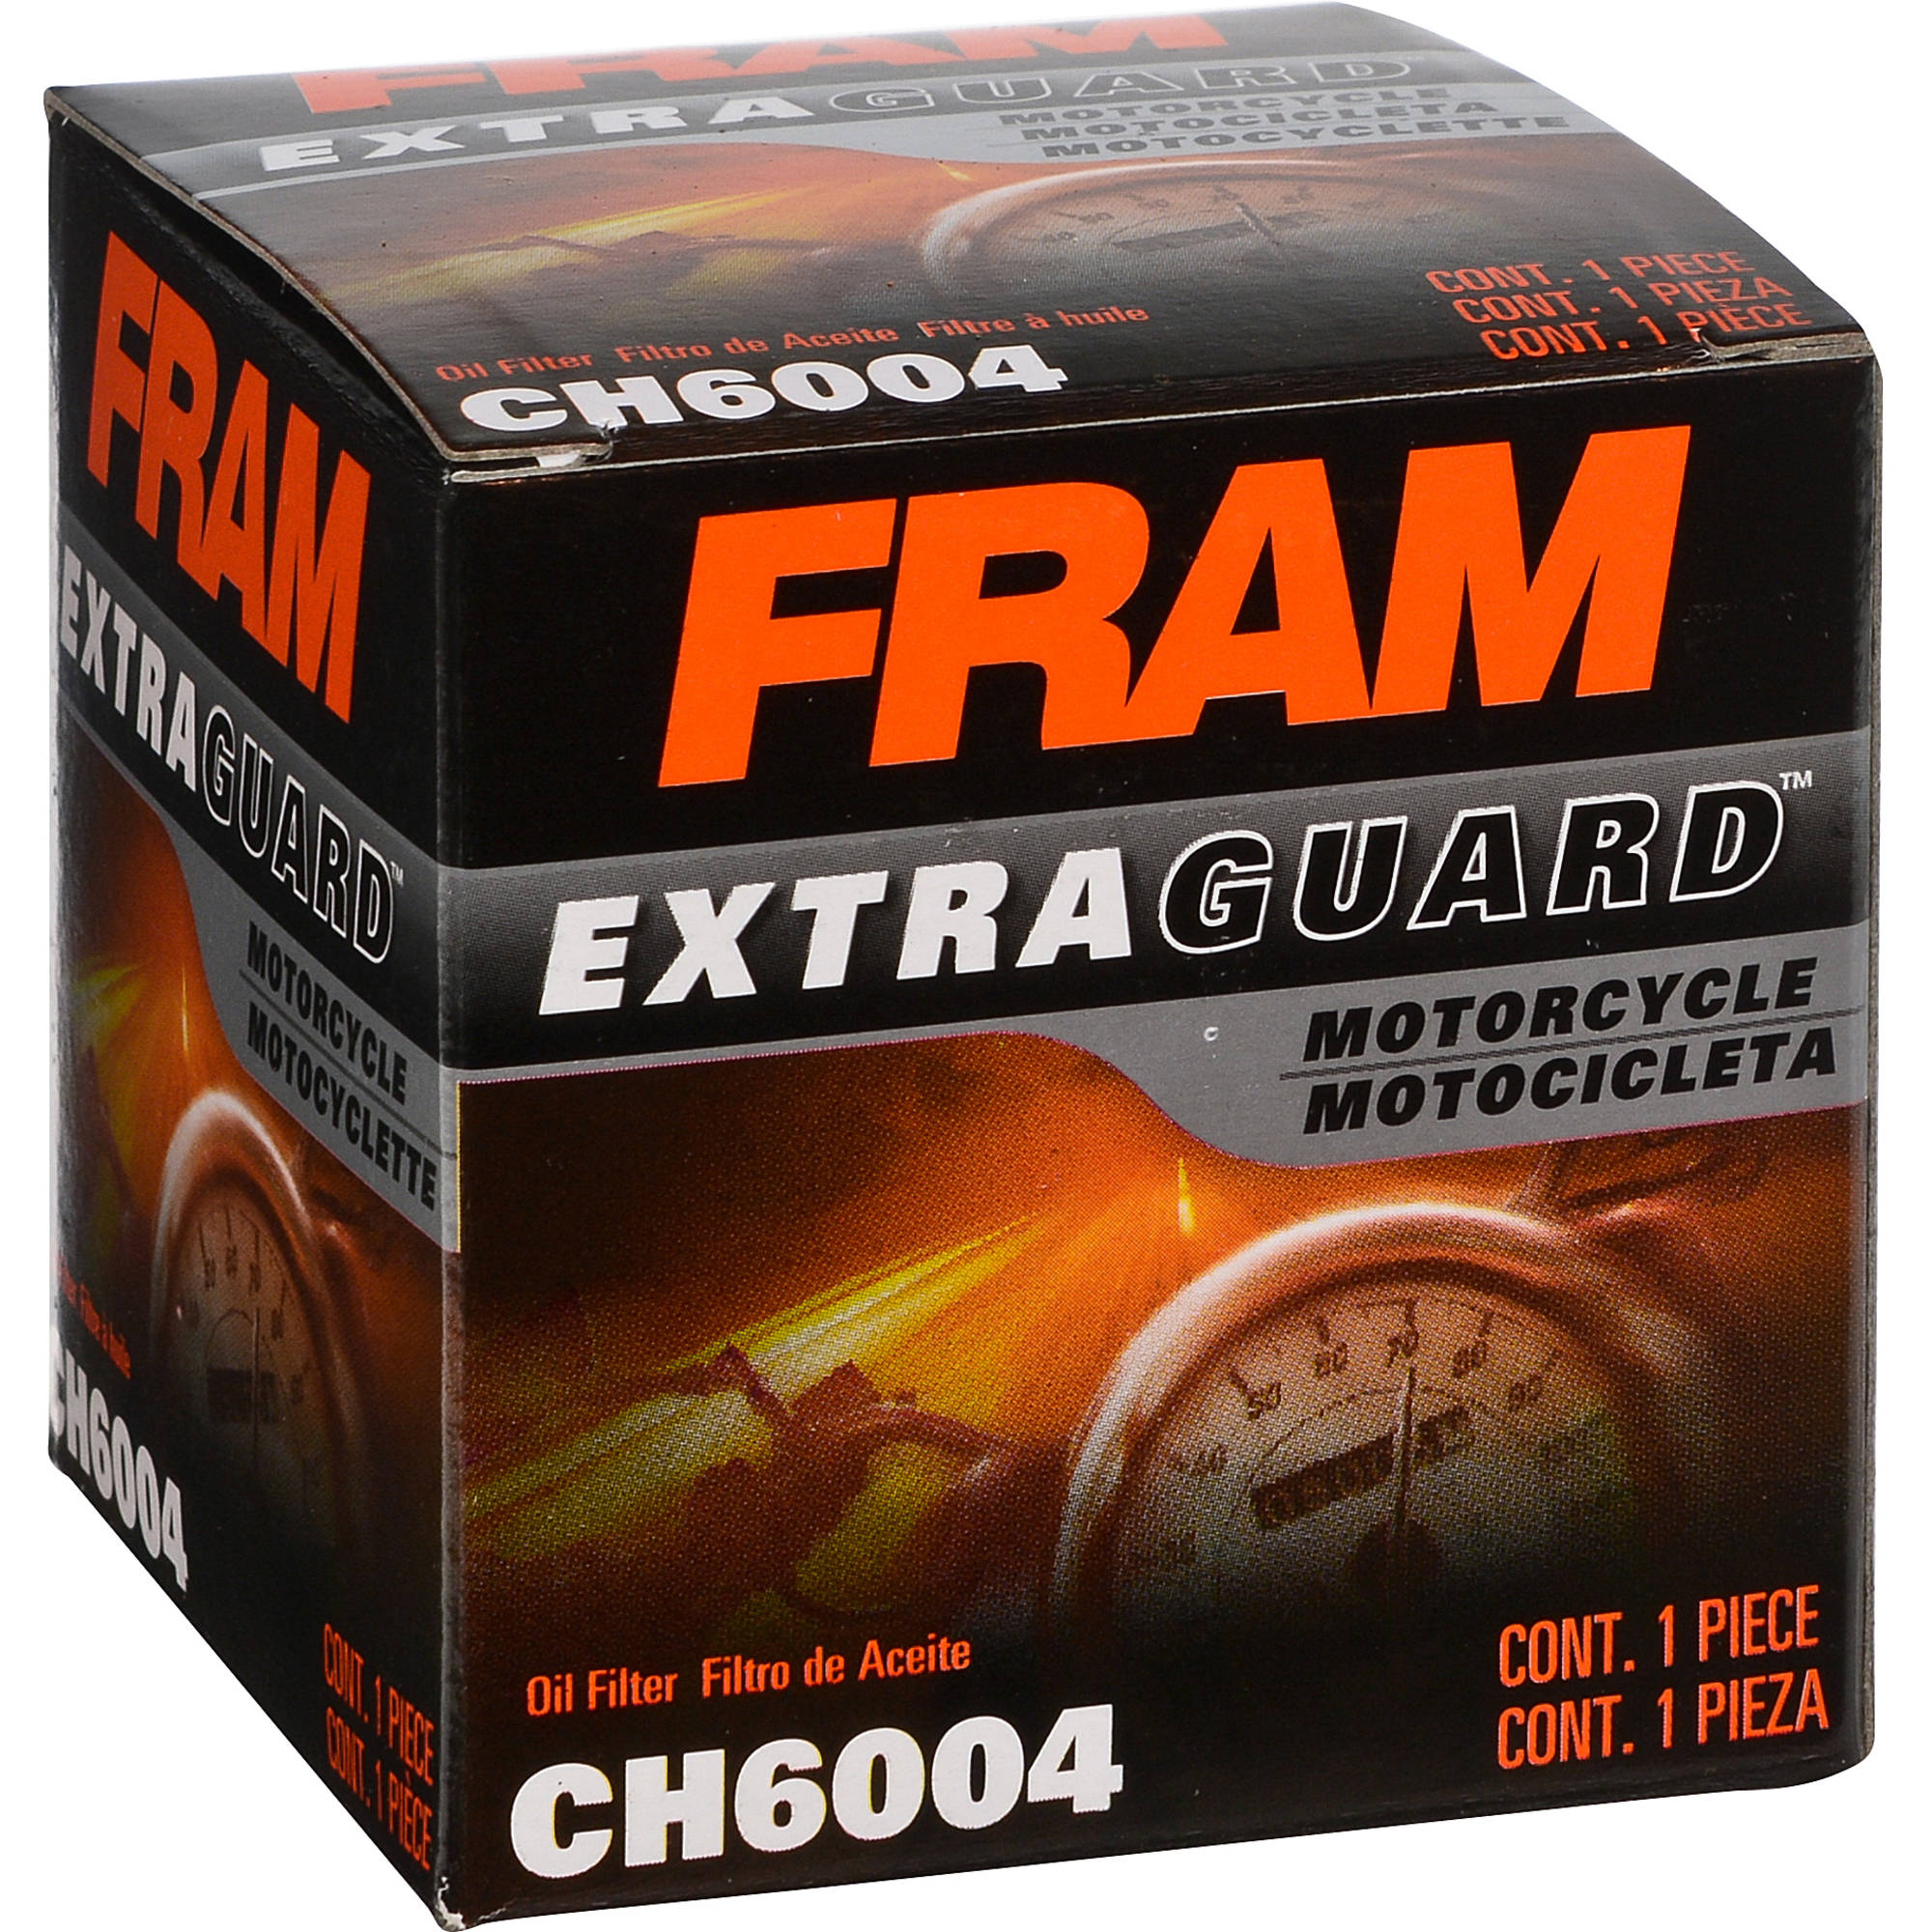 FRAM Motorcycle Oil Filter, CH6004